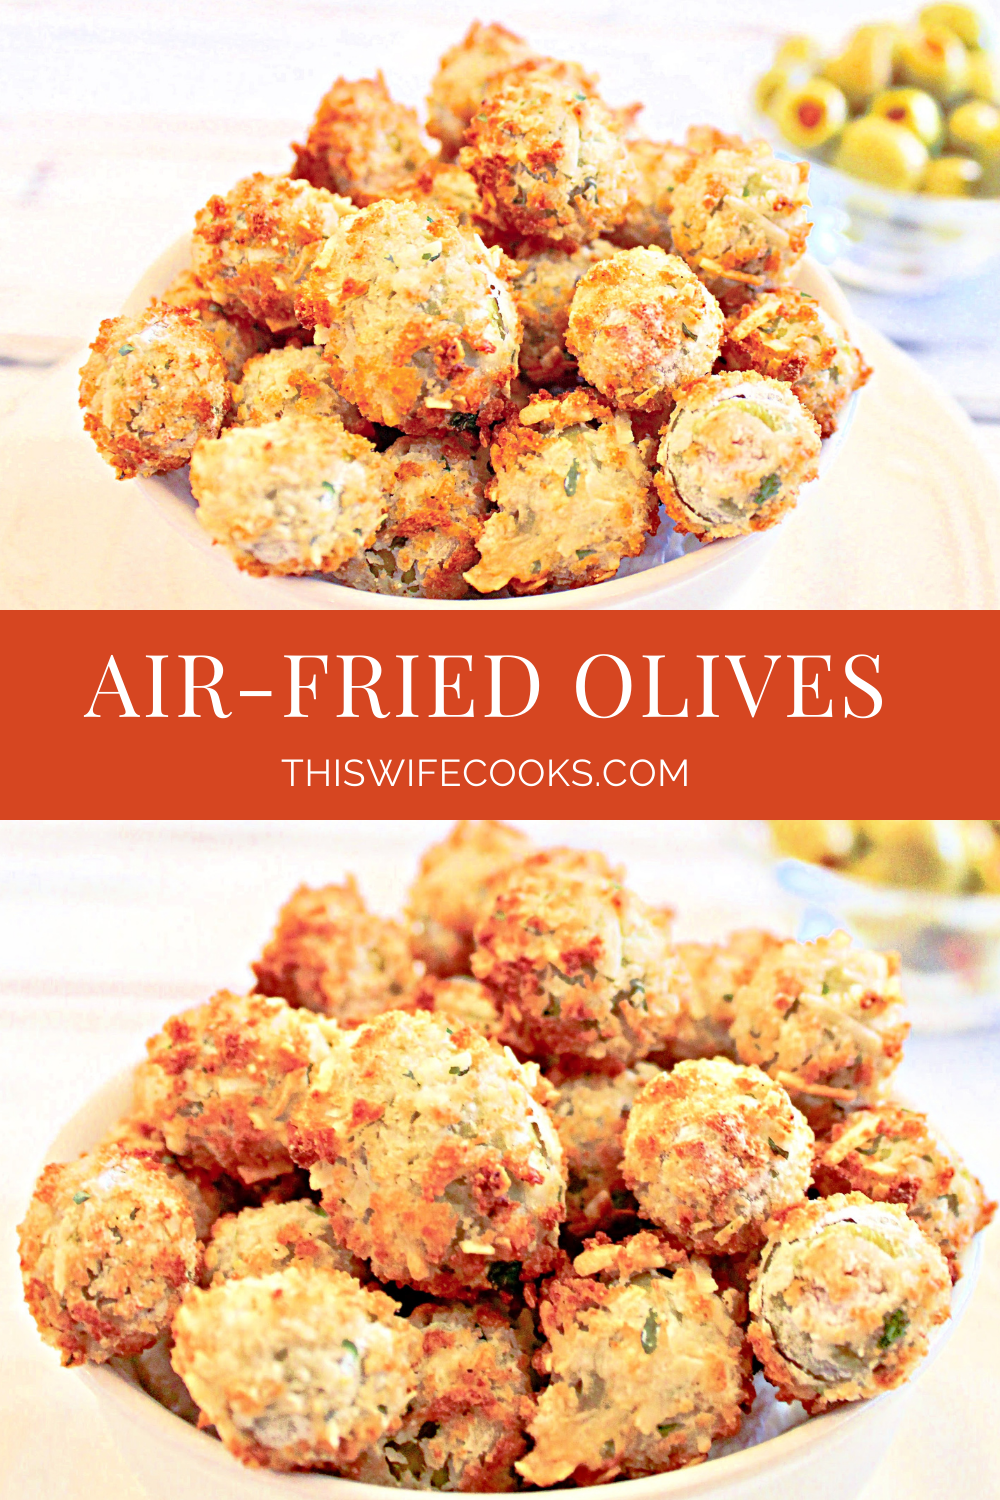 Air Fried Olives ~ Pimento-stuffed green olives are coated in batter then air fried for a healthier alternative to traditional pan-fried olives. A quick and easy appetizer ready to serve in about 15 minutes! via @thiswifecooks